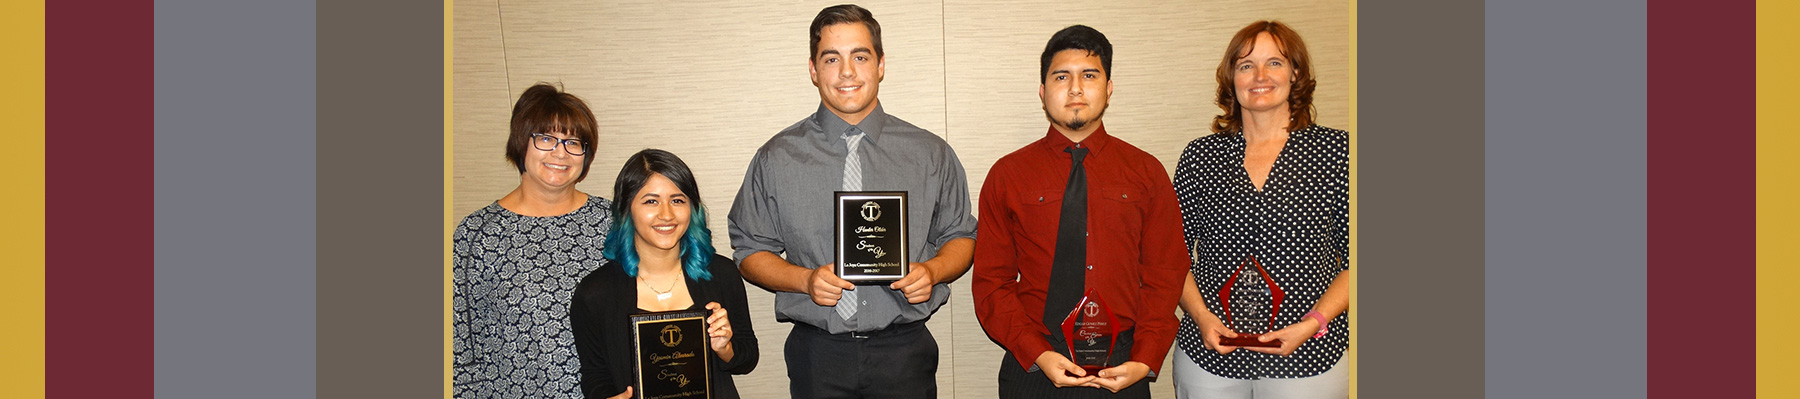 Students with plaque awards